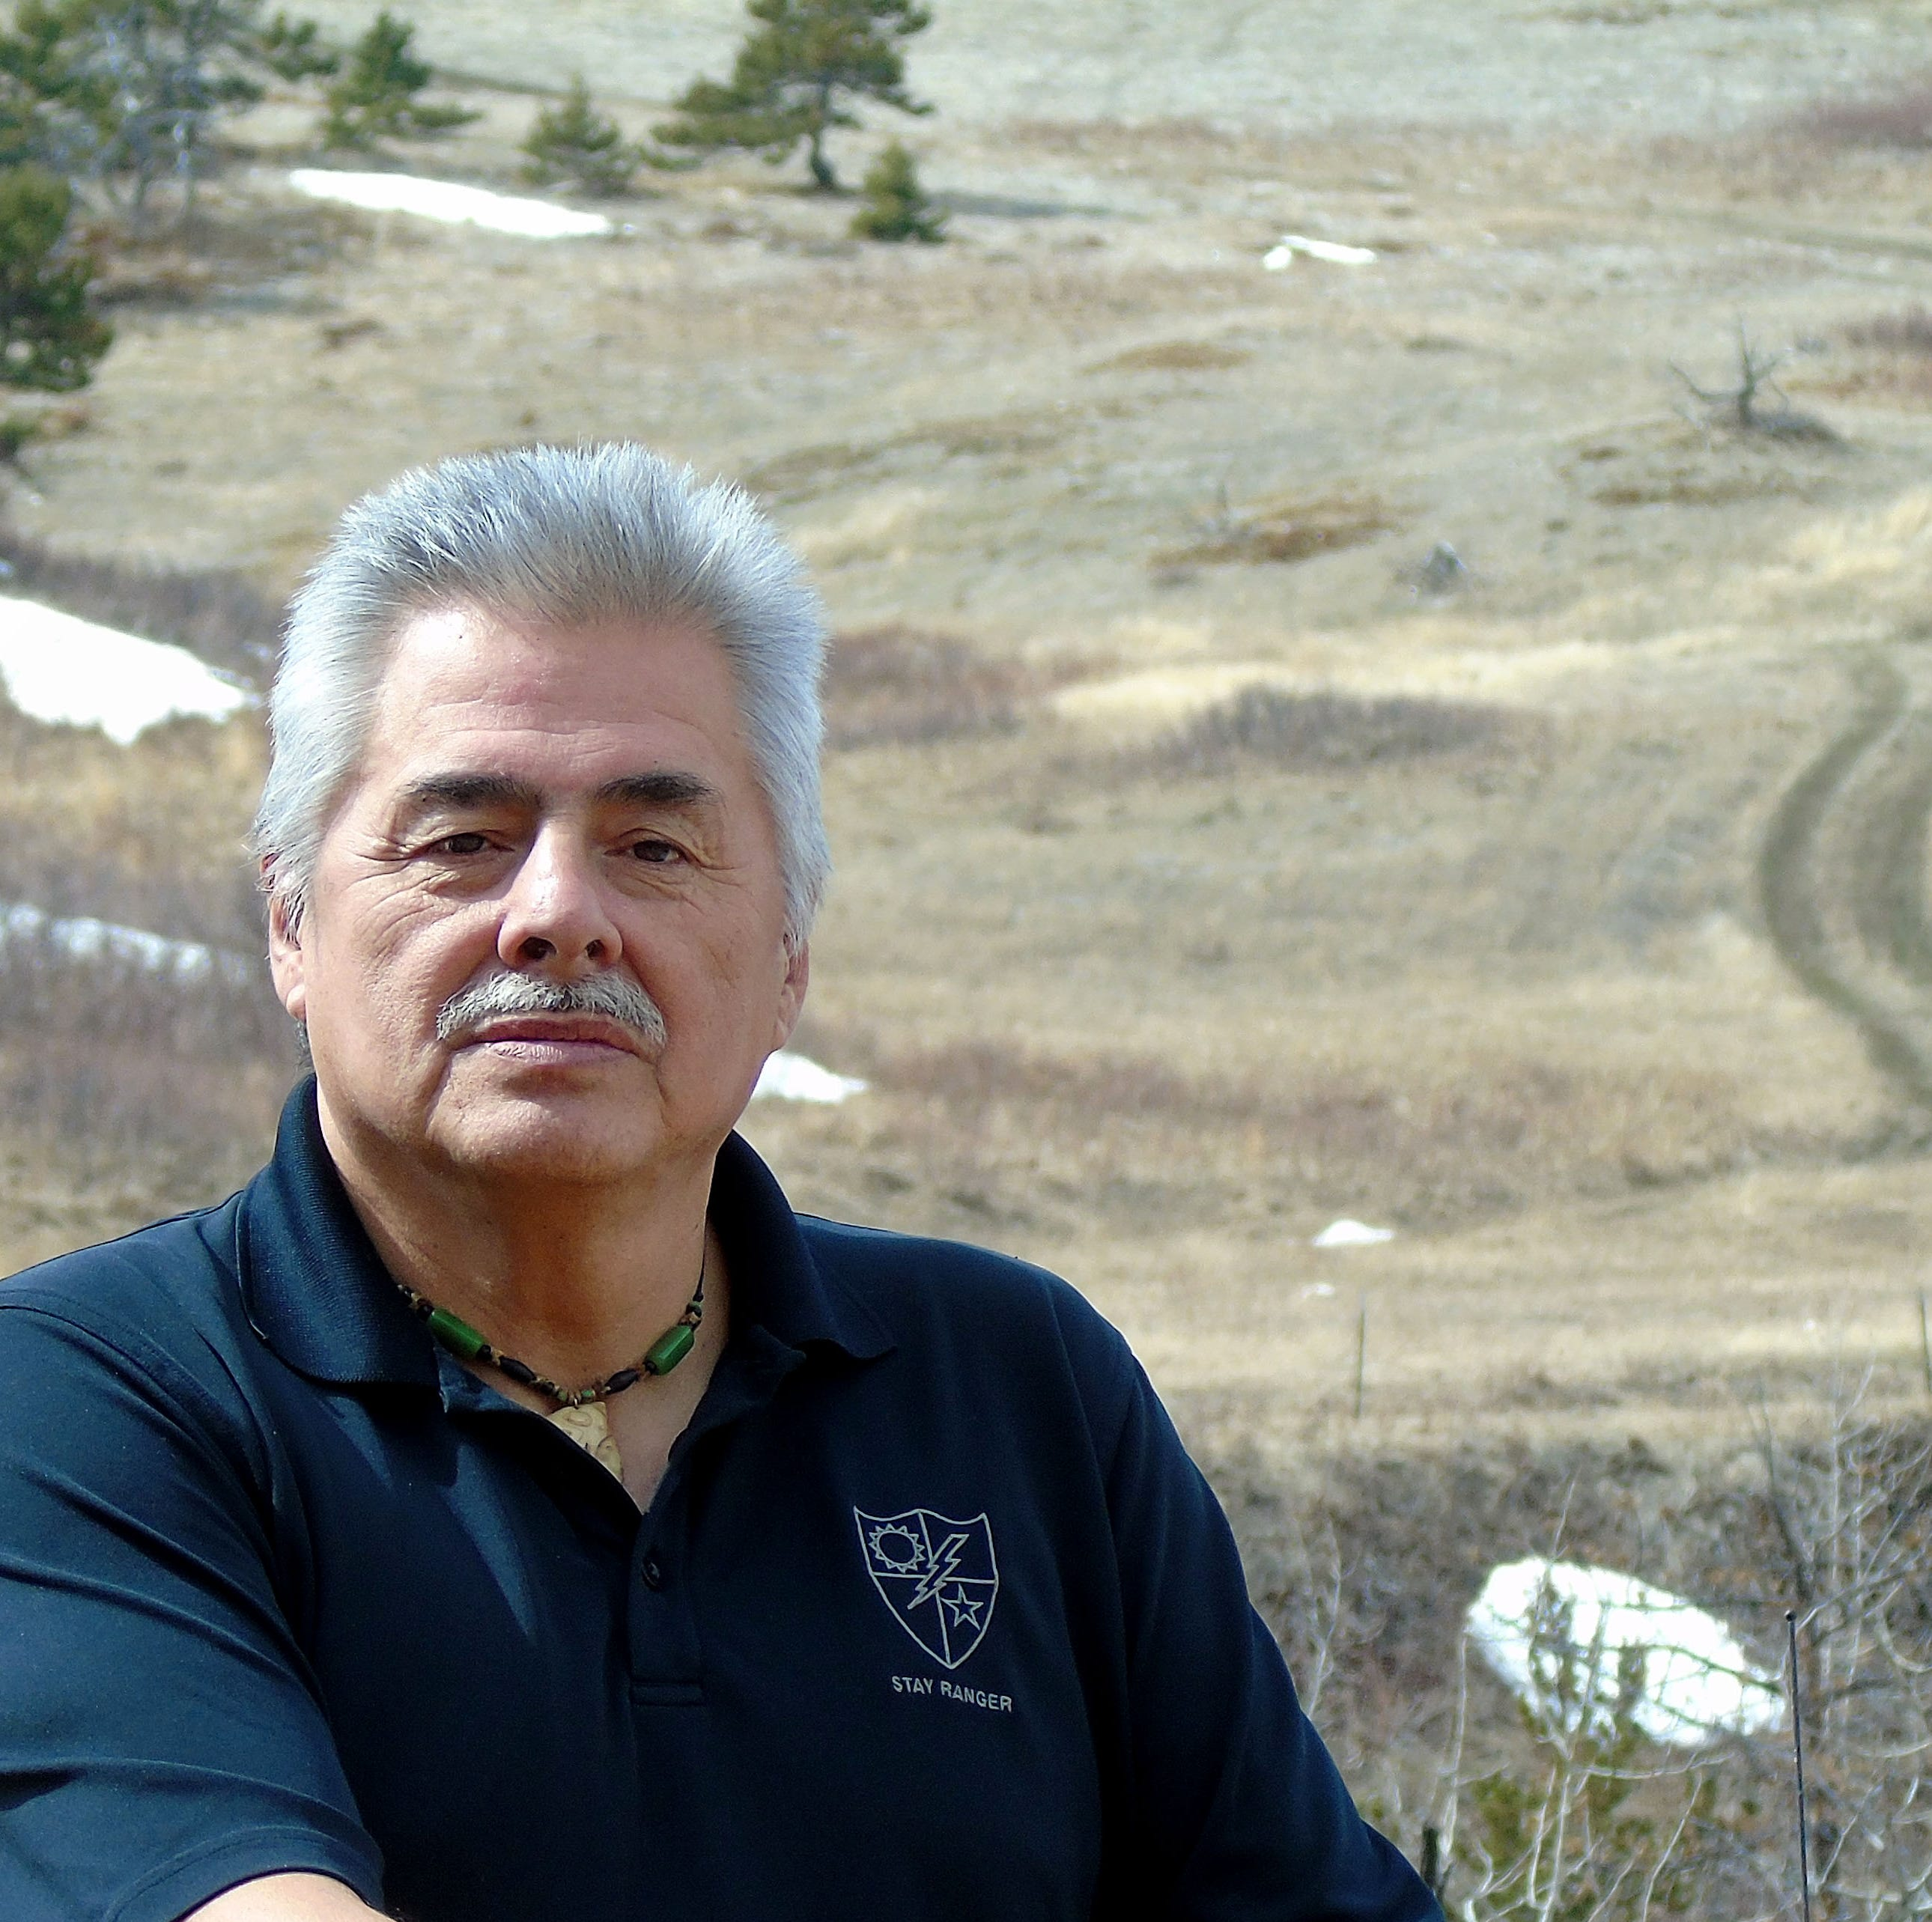 Blackfeet man's DNA oldest found in Americas, testing company says